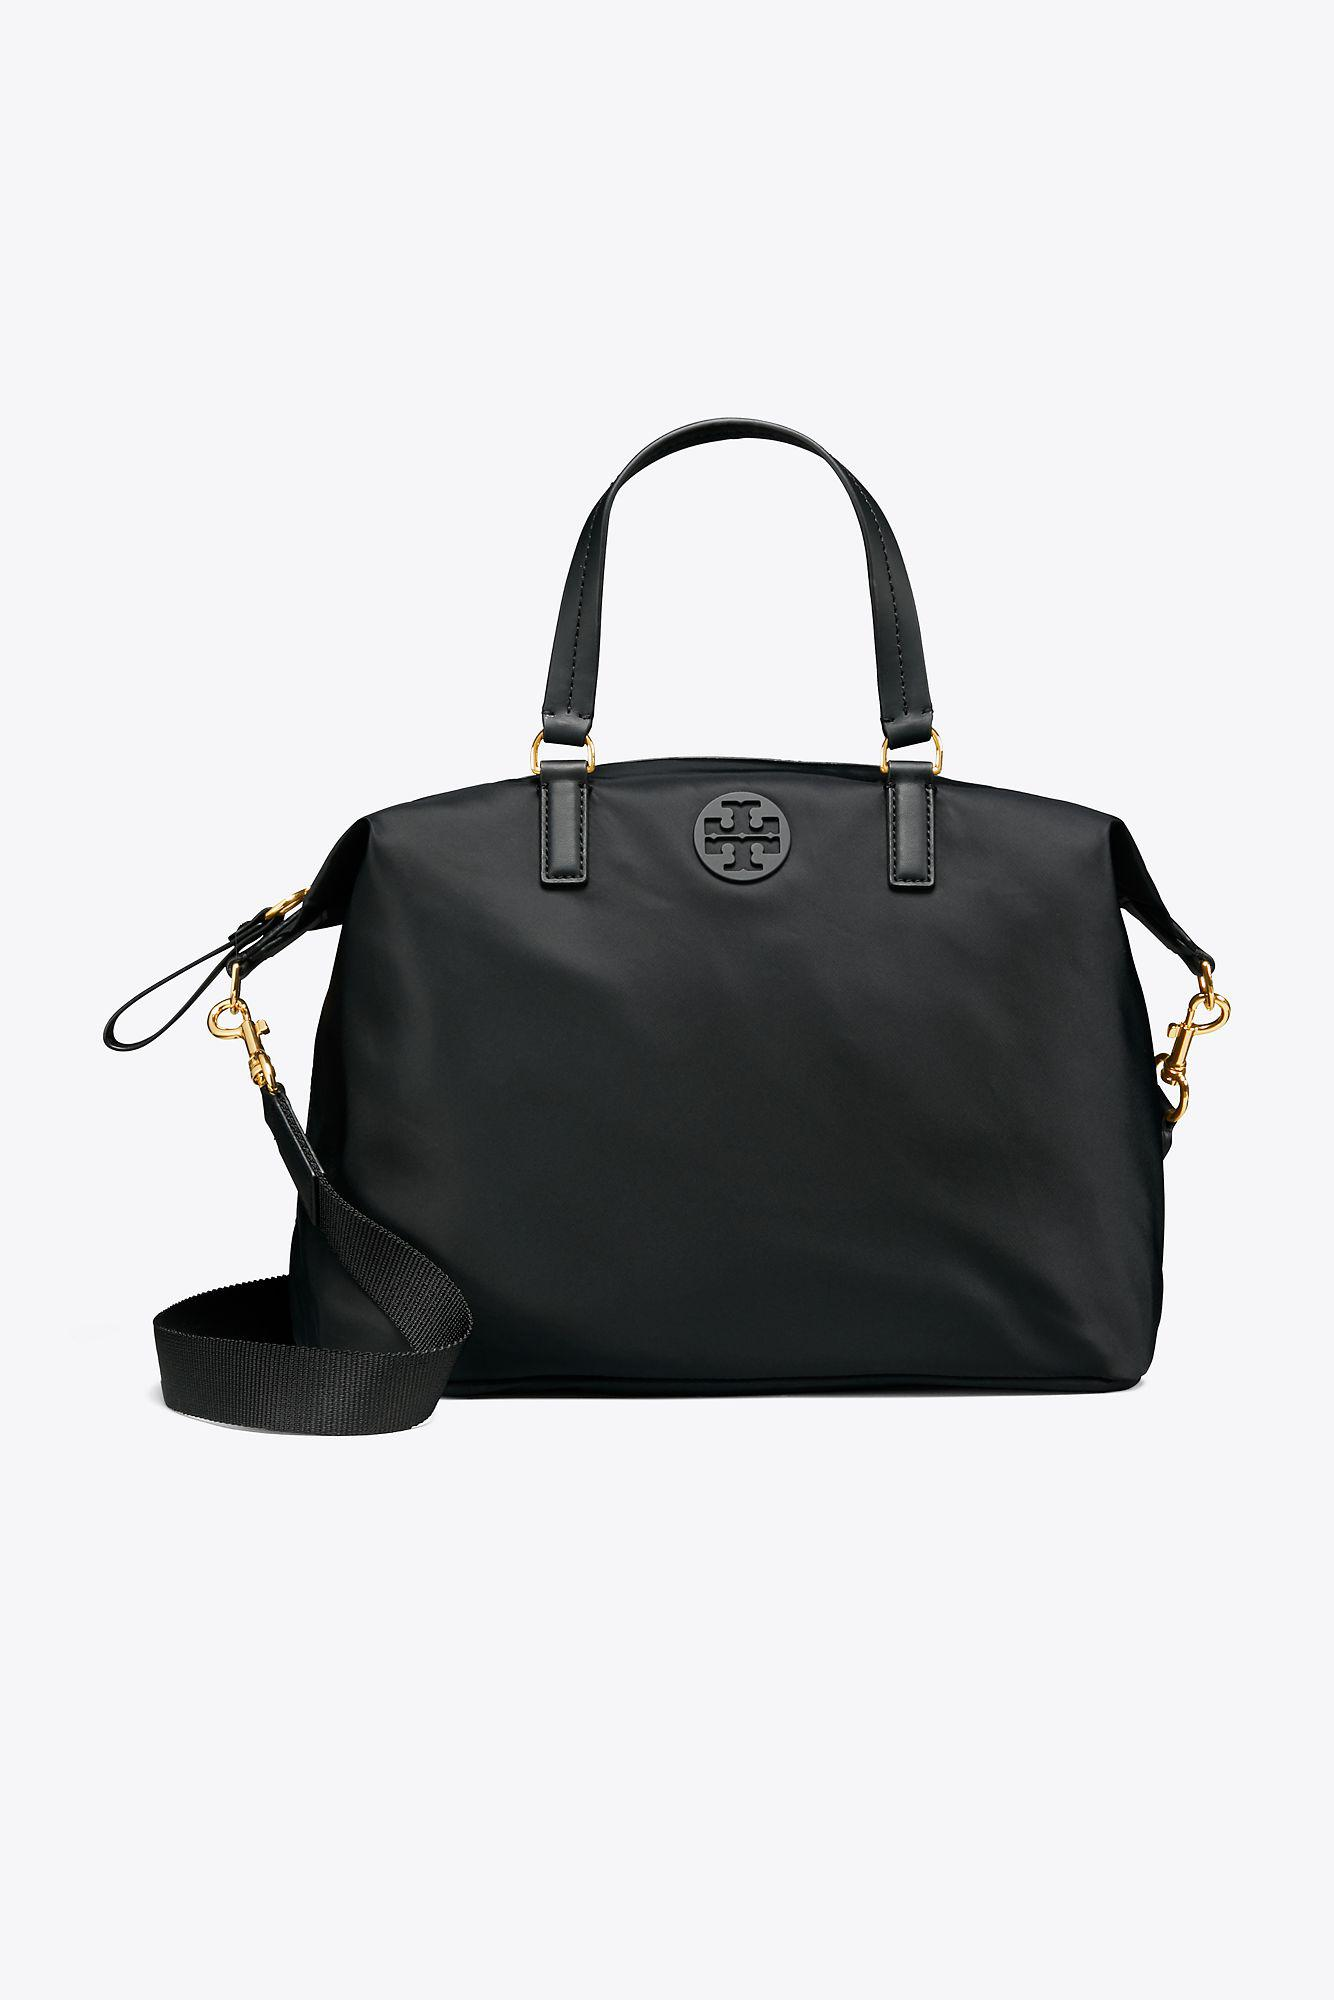 0bc21f7a75e Tory Burch Tilda Nylon Slouchy Satchel in Black - Lyst